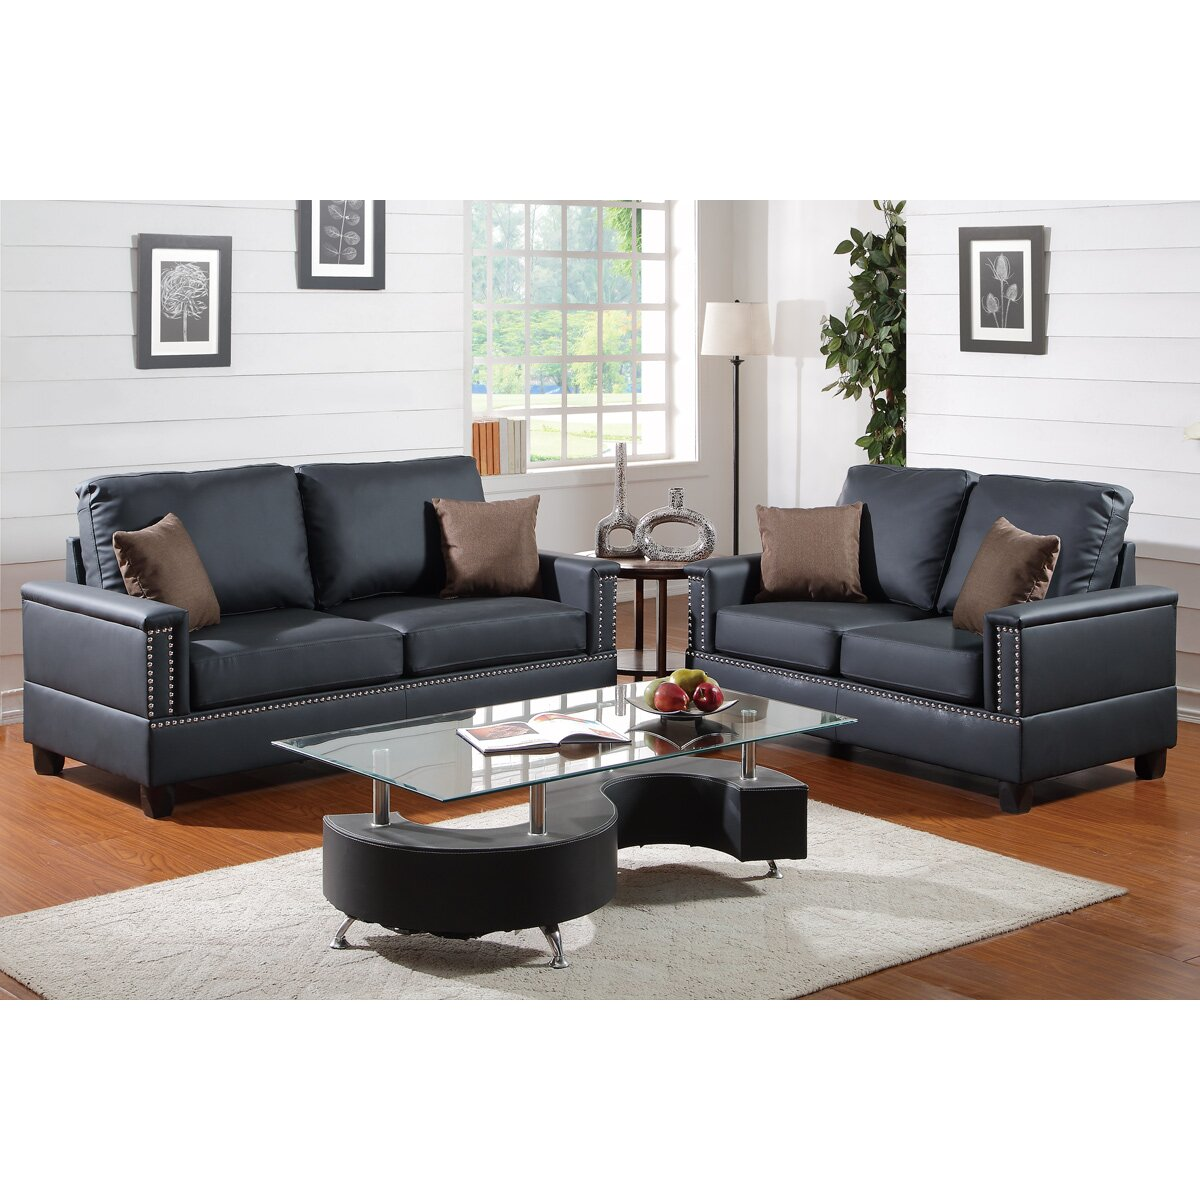 Poundex bobkona norris 2 piece sofa and loveseat set for 2 piece furniture set